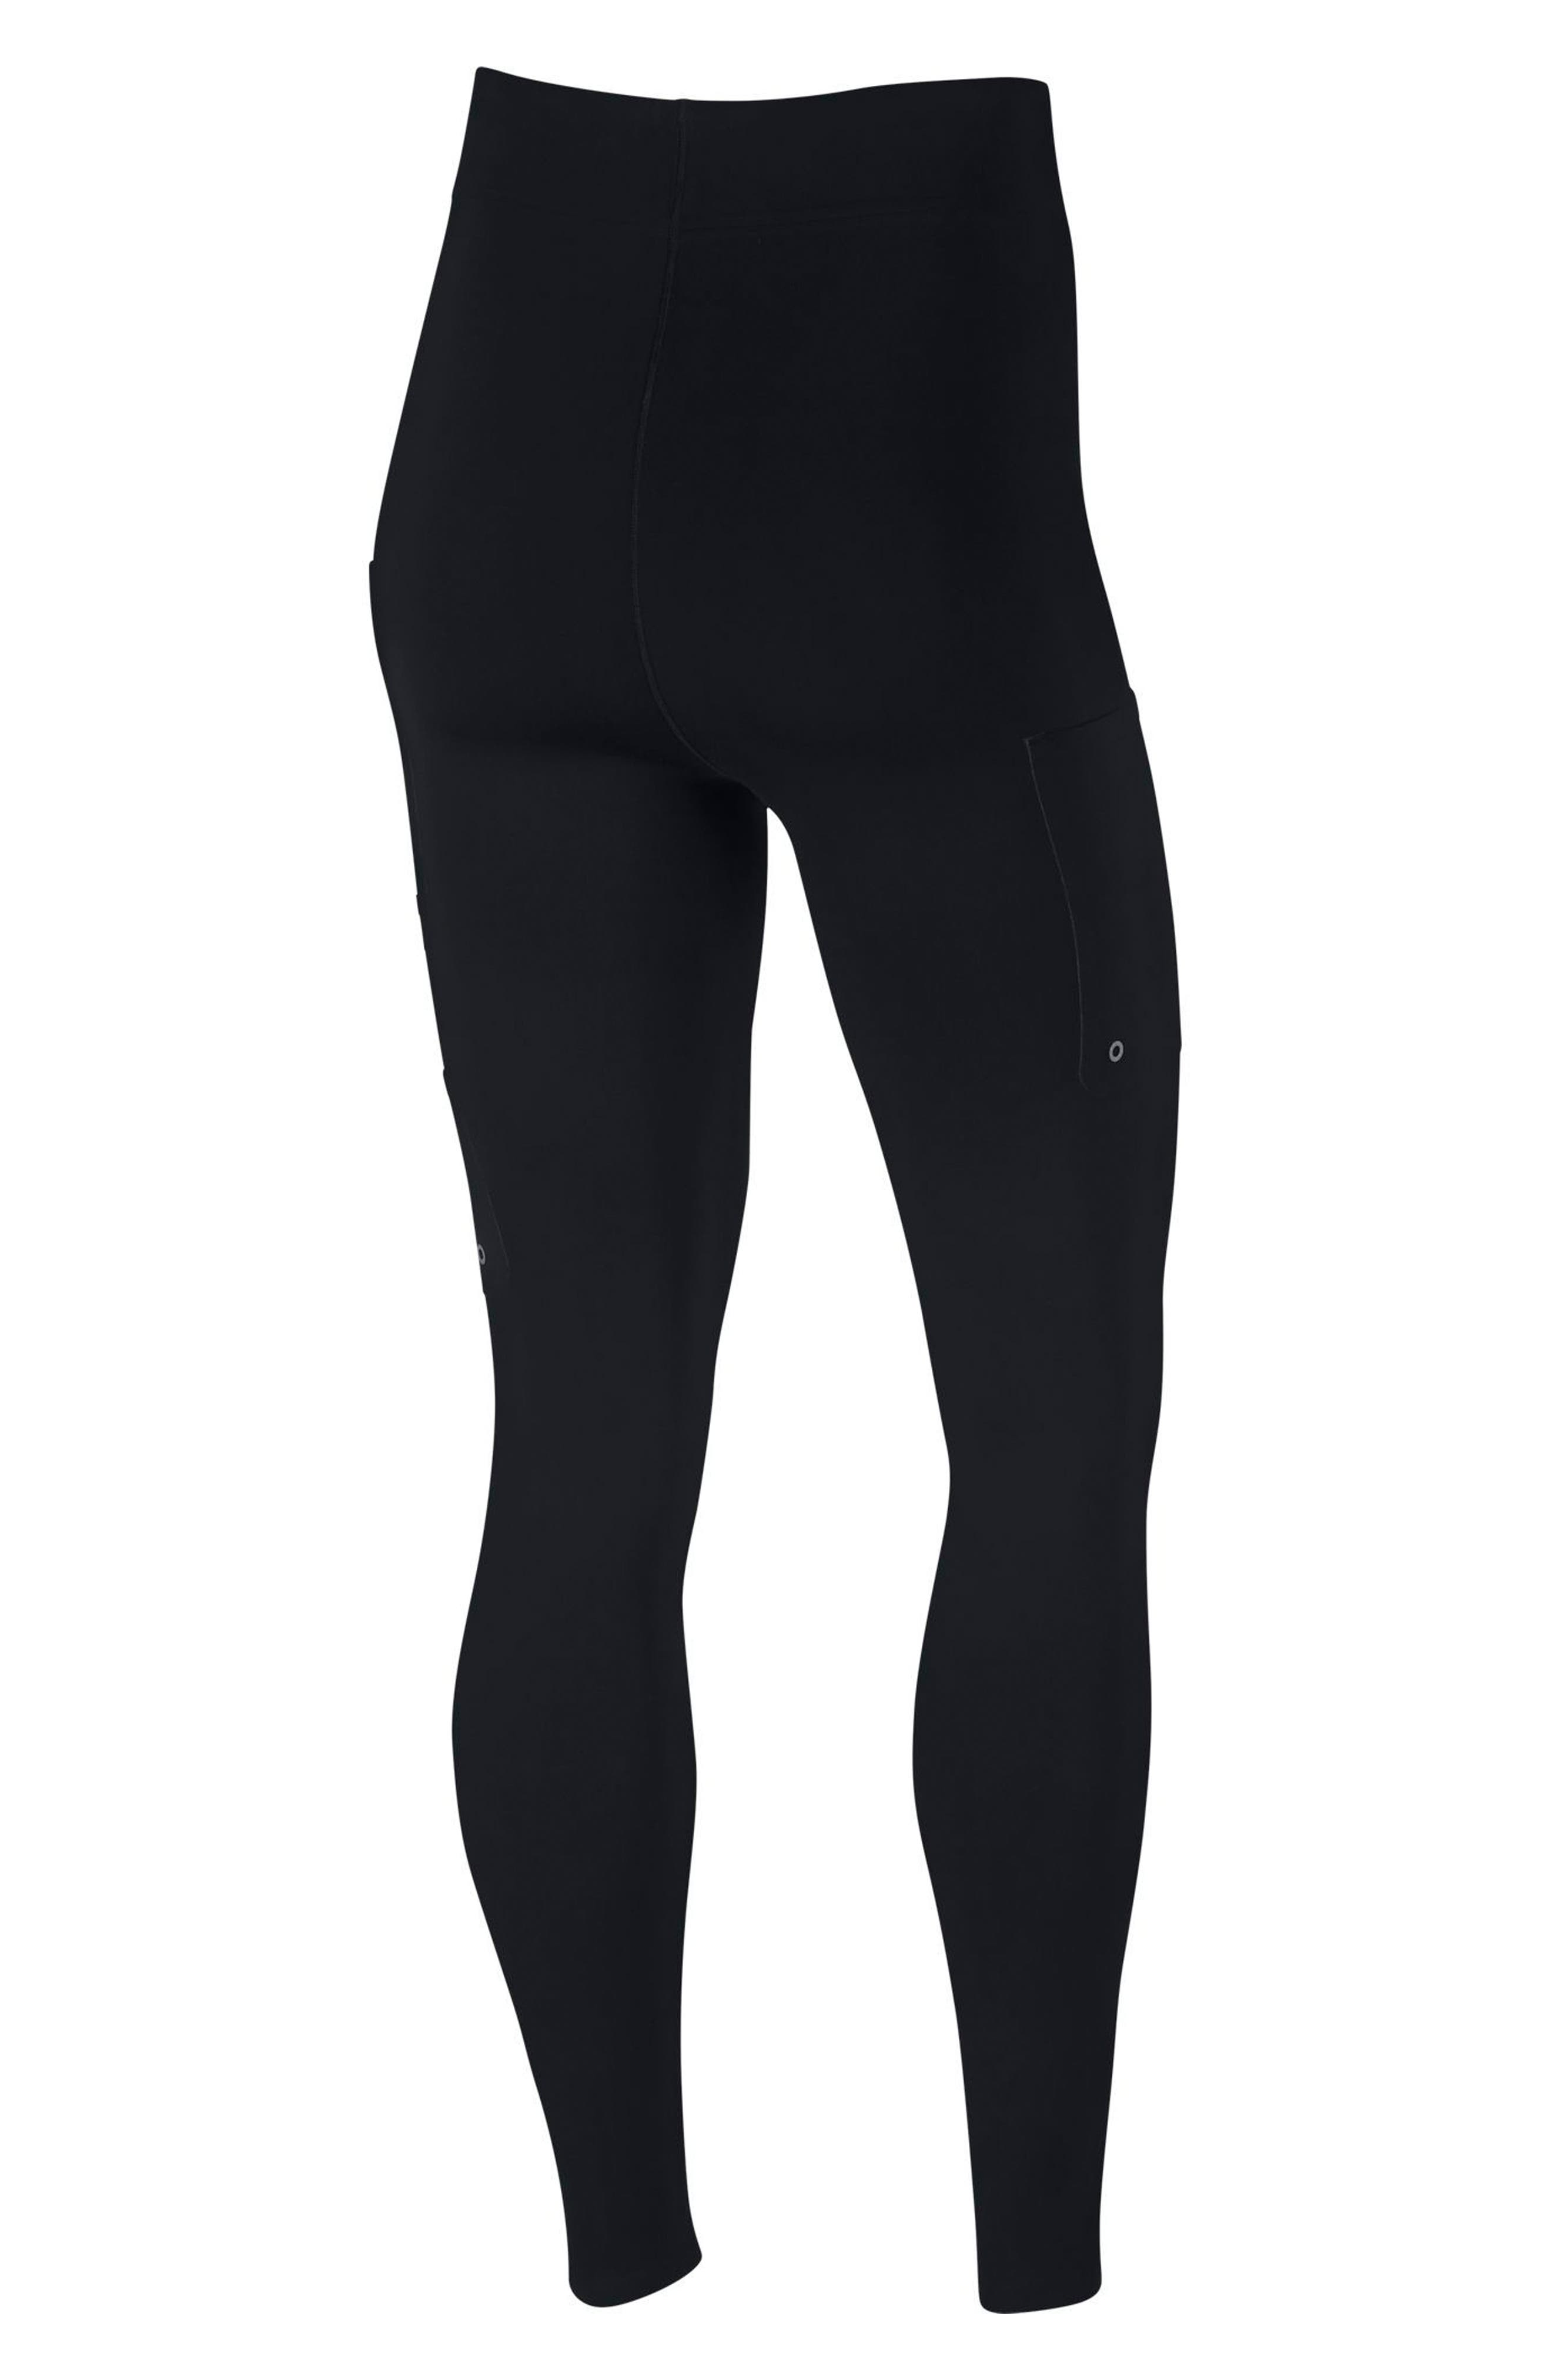 NikeLab XX Women's High Rise Training Tights,                             Alternate thumbnail 8, color,                             BLACK